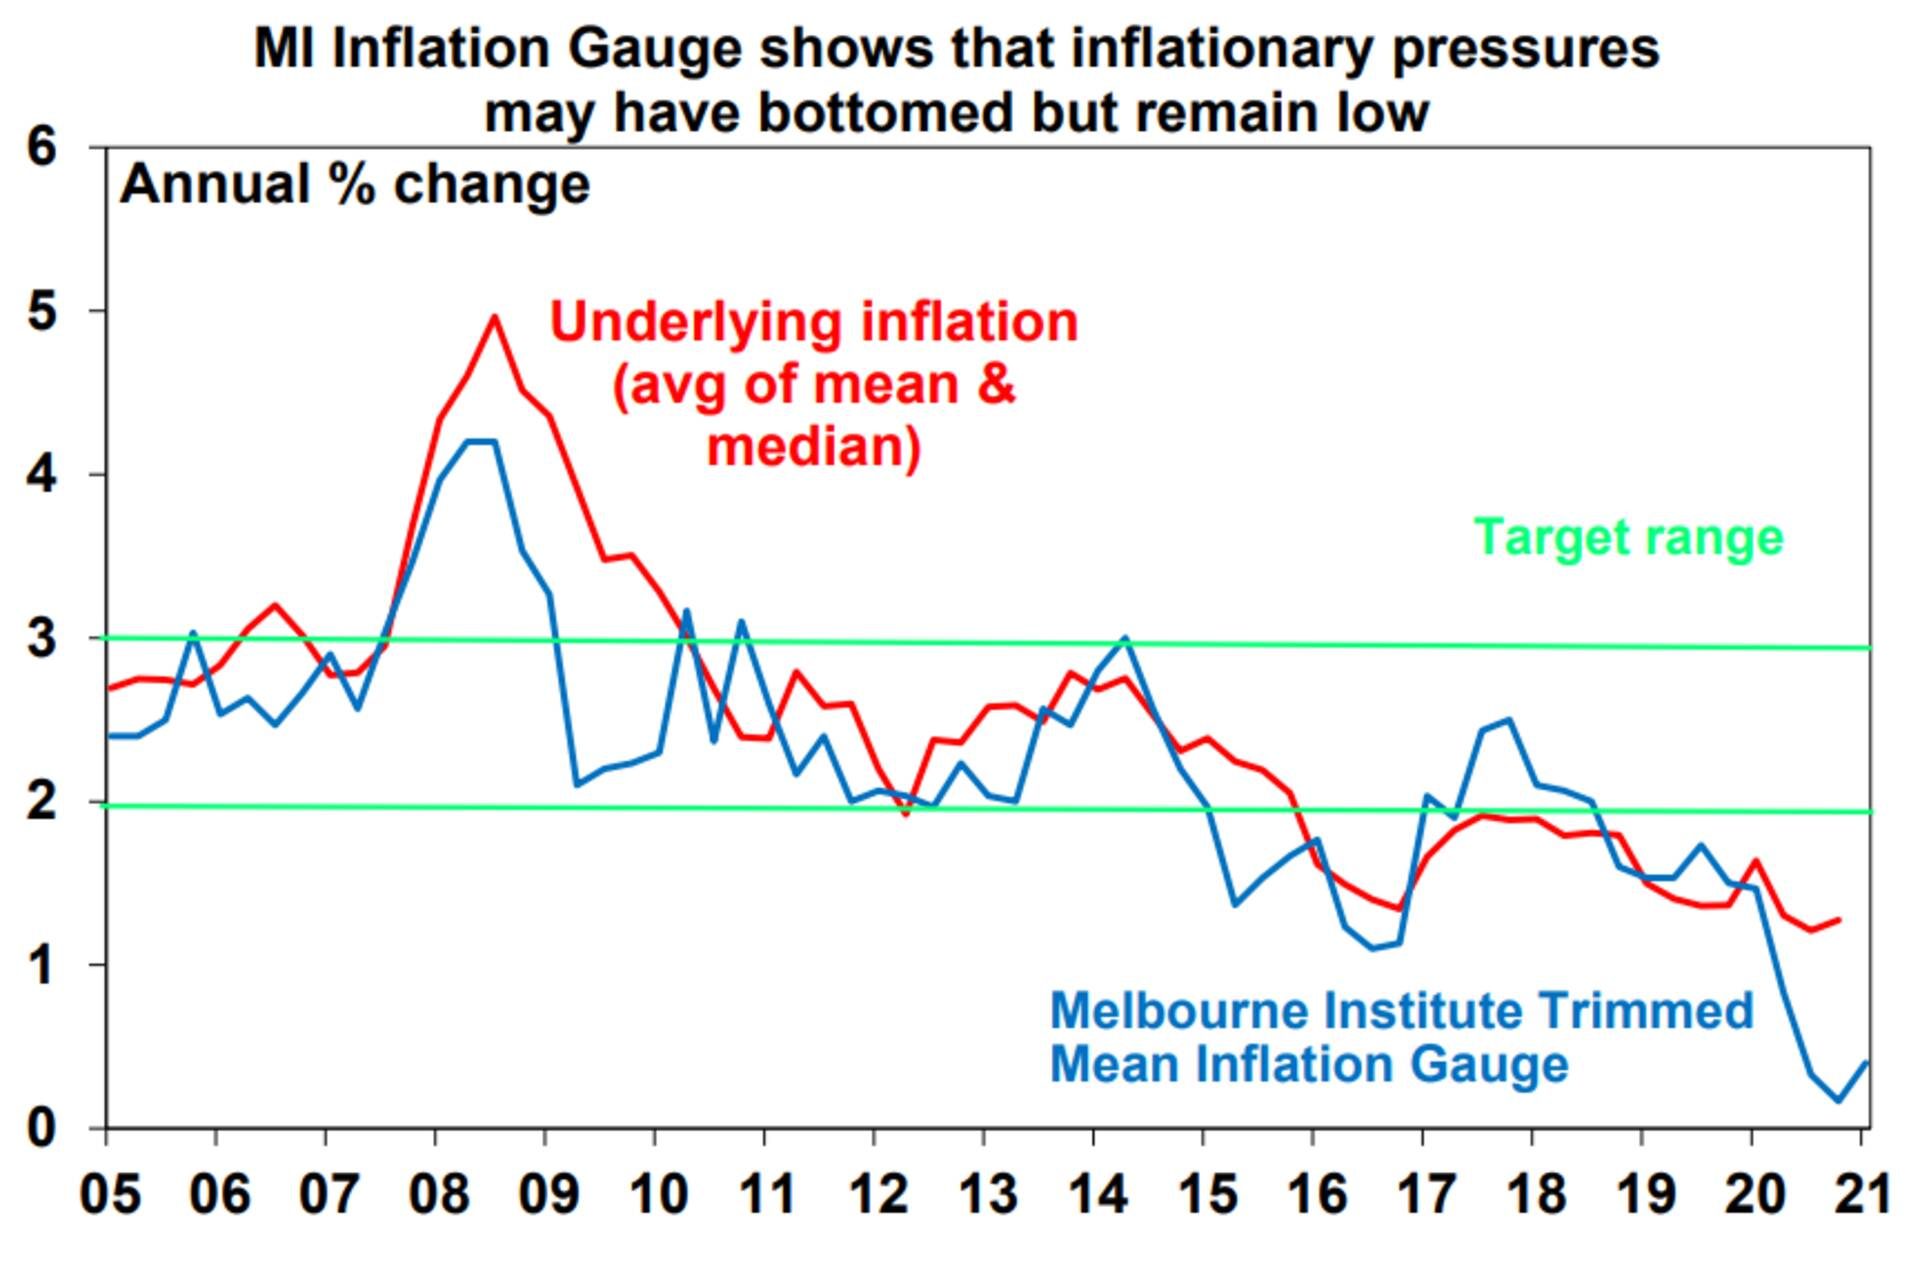 Source: ABS, Melbourne Institute, AMP Capital